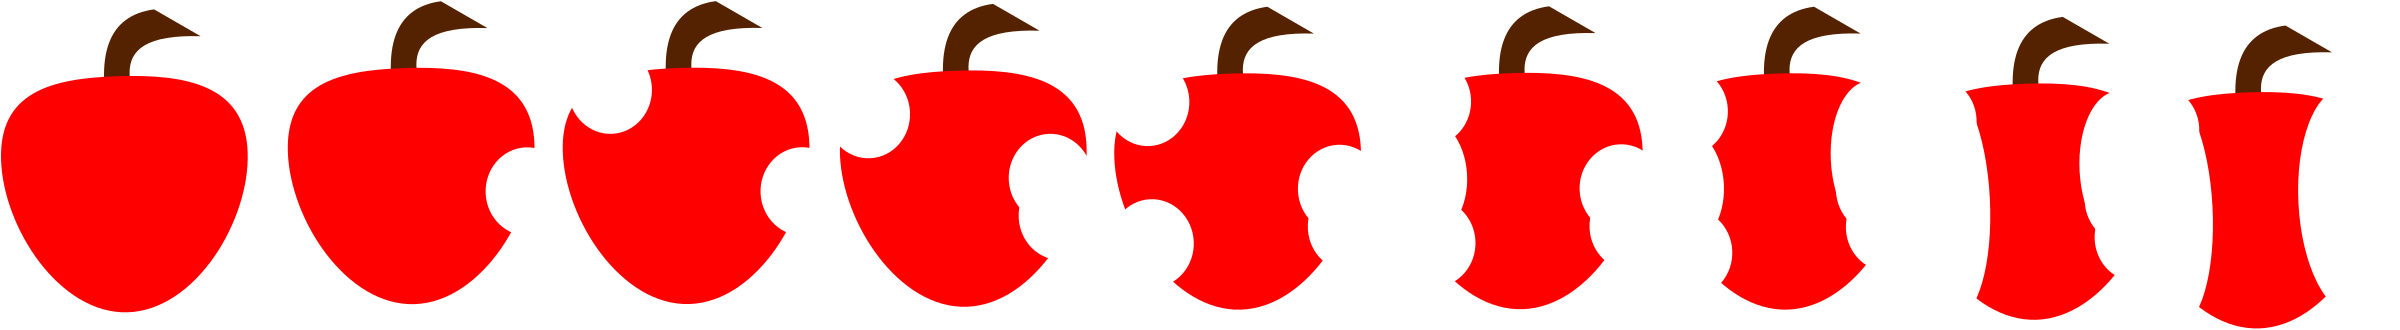 Apple clipart border banner royalty free library Clipart - aplple banner royalty free library